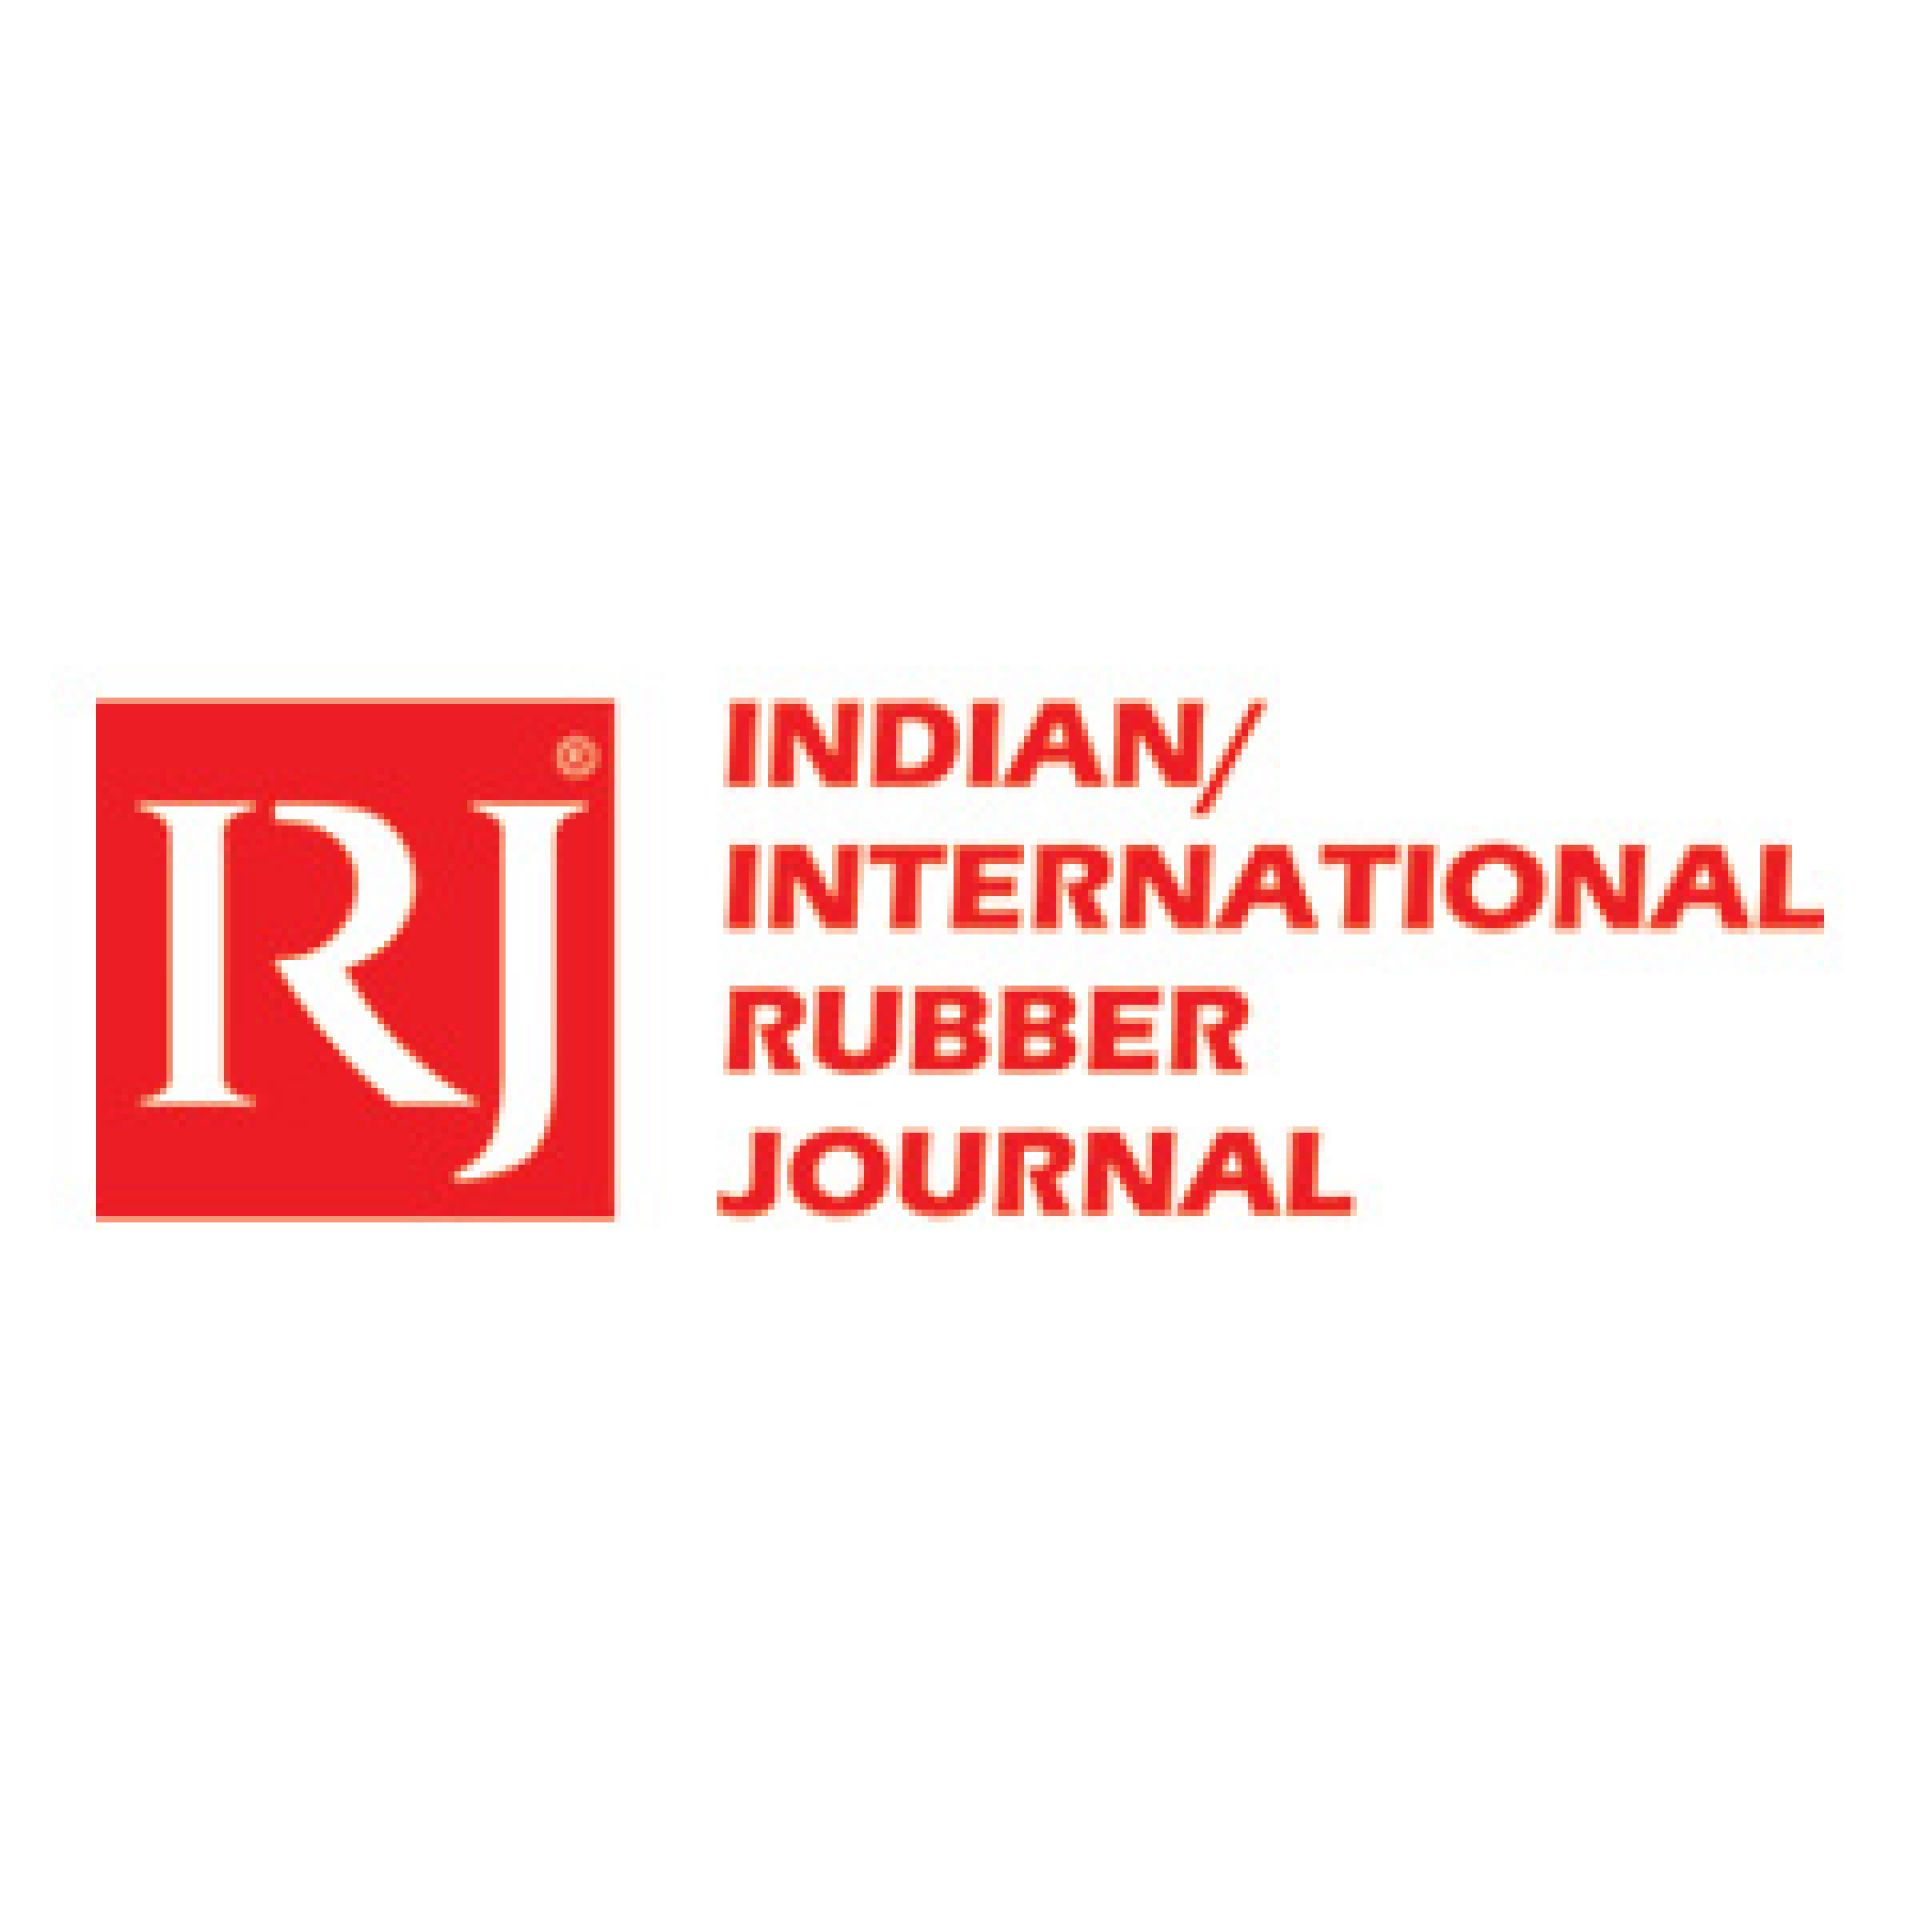 International/ Indian Rubber Journal